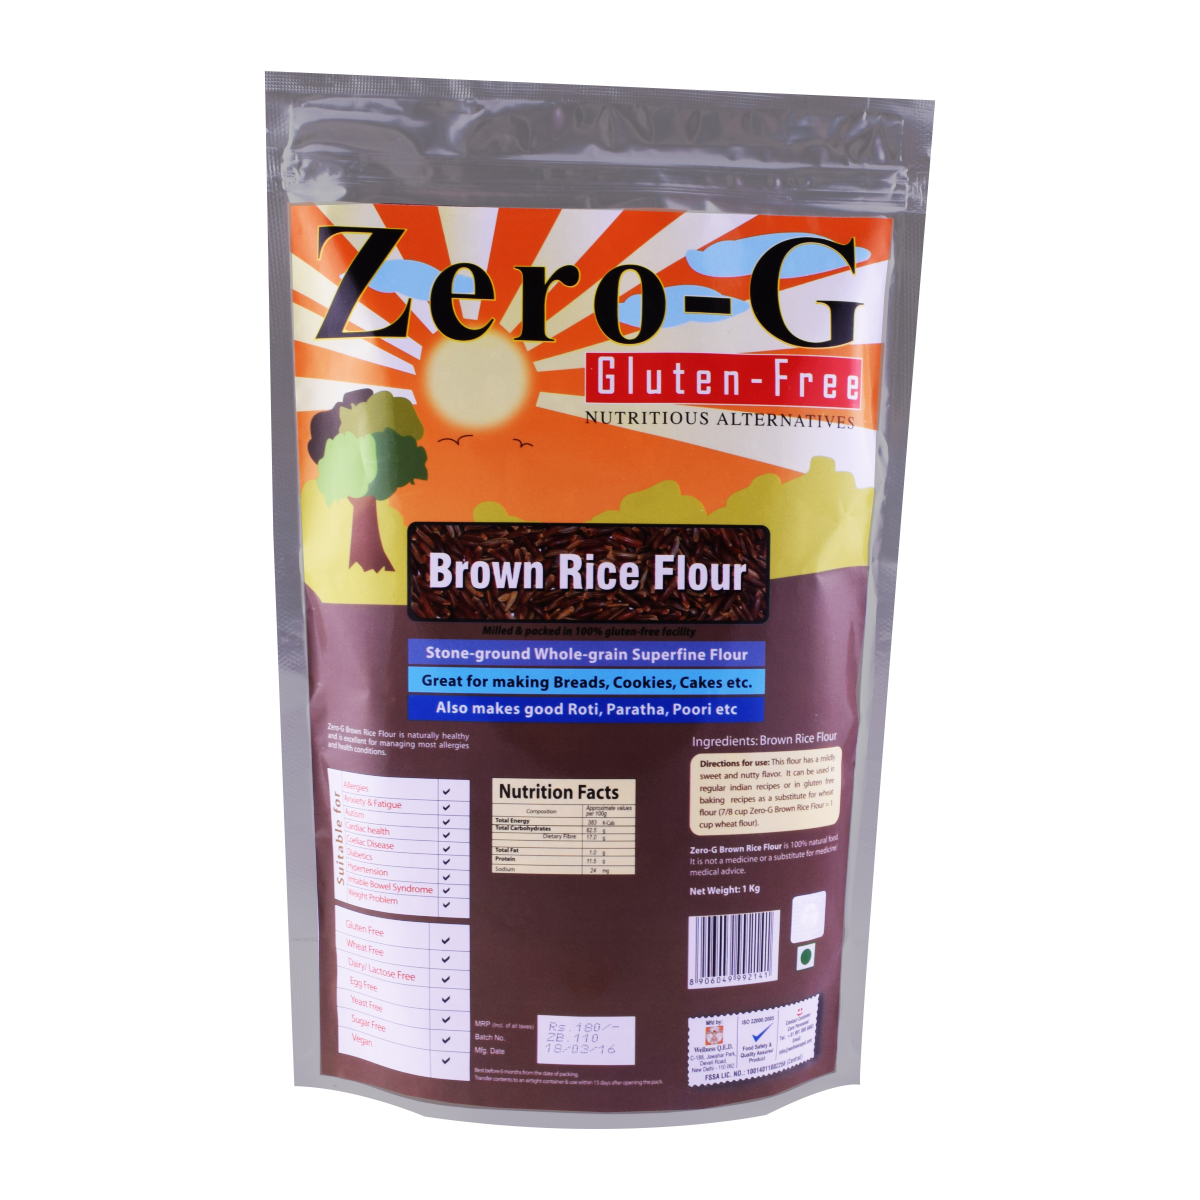 Zero-G Brown Rice Flour